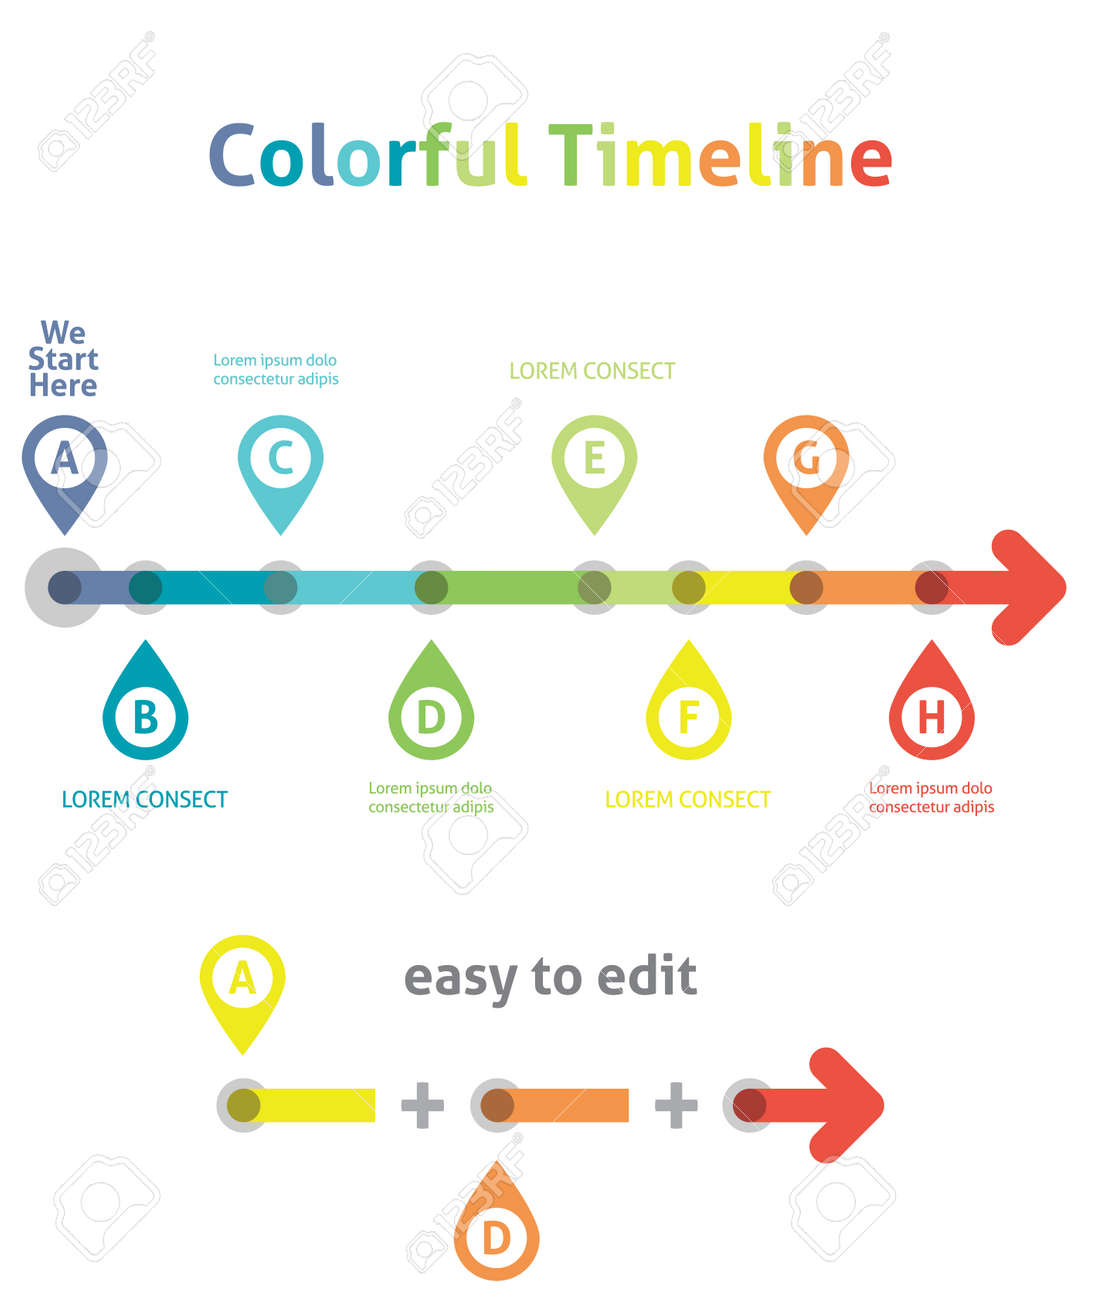 Colorful Timeline Infographic Template Easy To Edit Royalty Free – Career Timeline Template